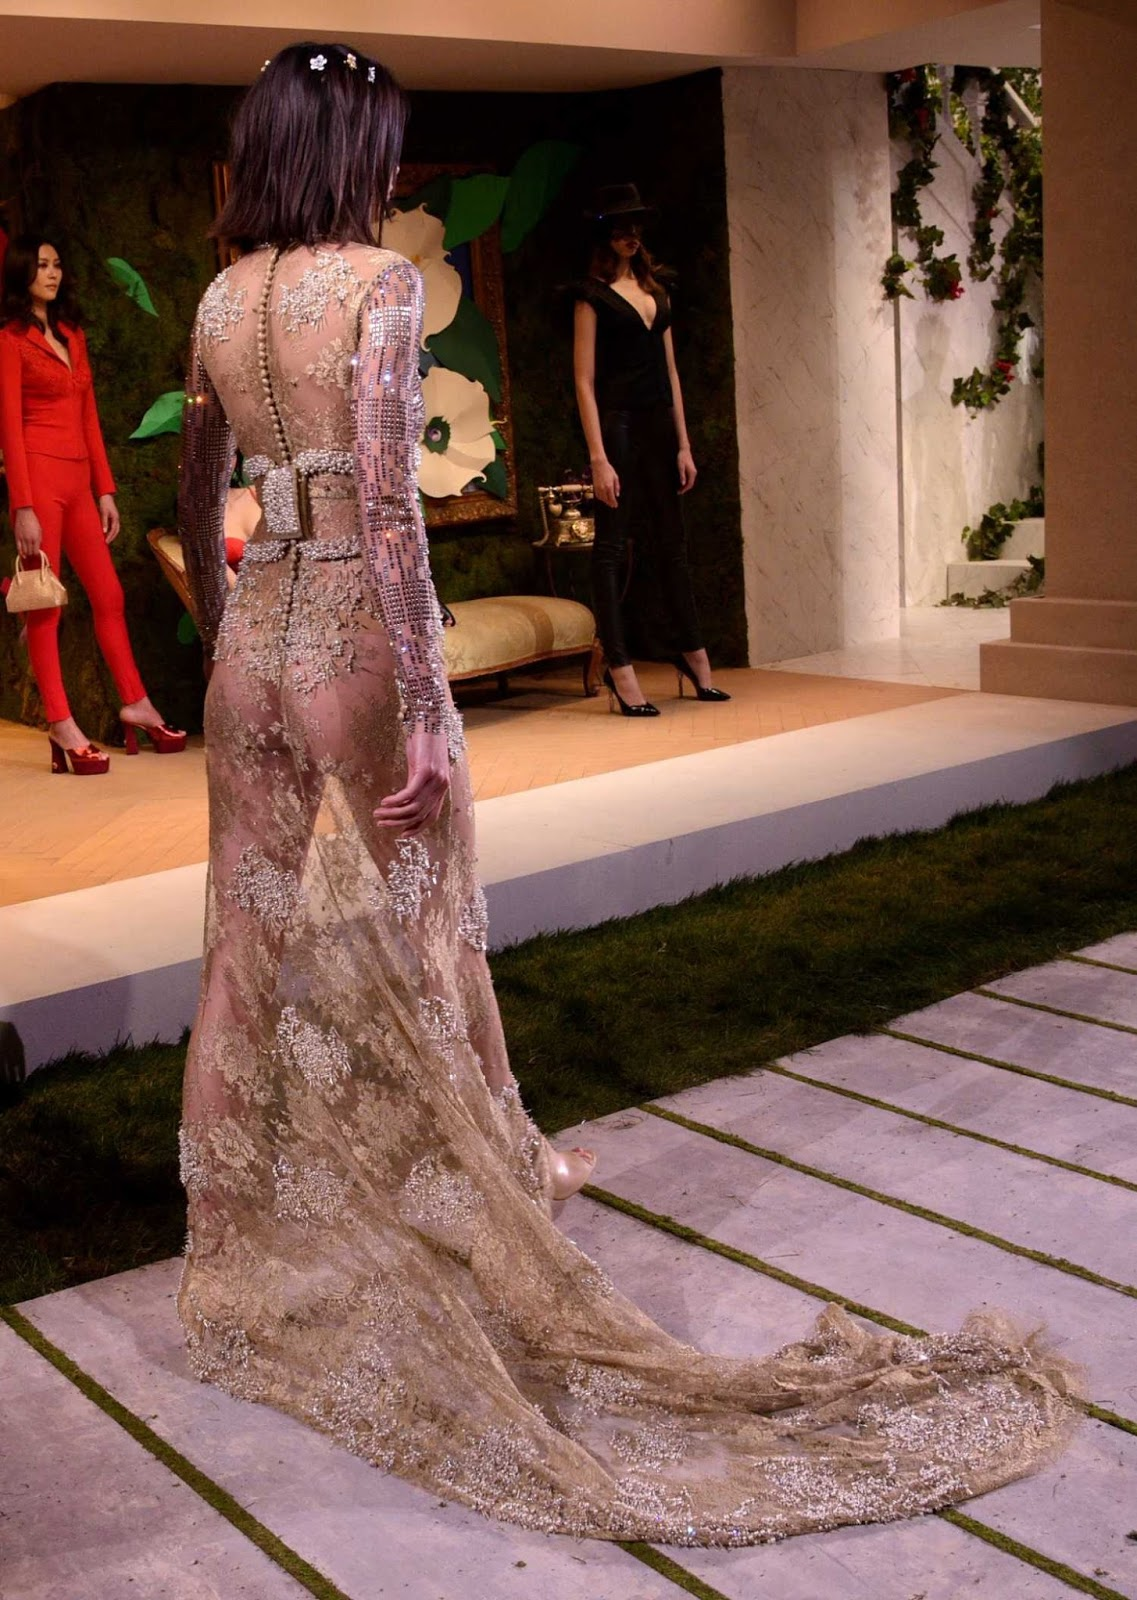 Kendall looked absolutely breathtaking in a completely sheer number which revealed her backside